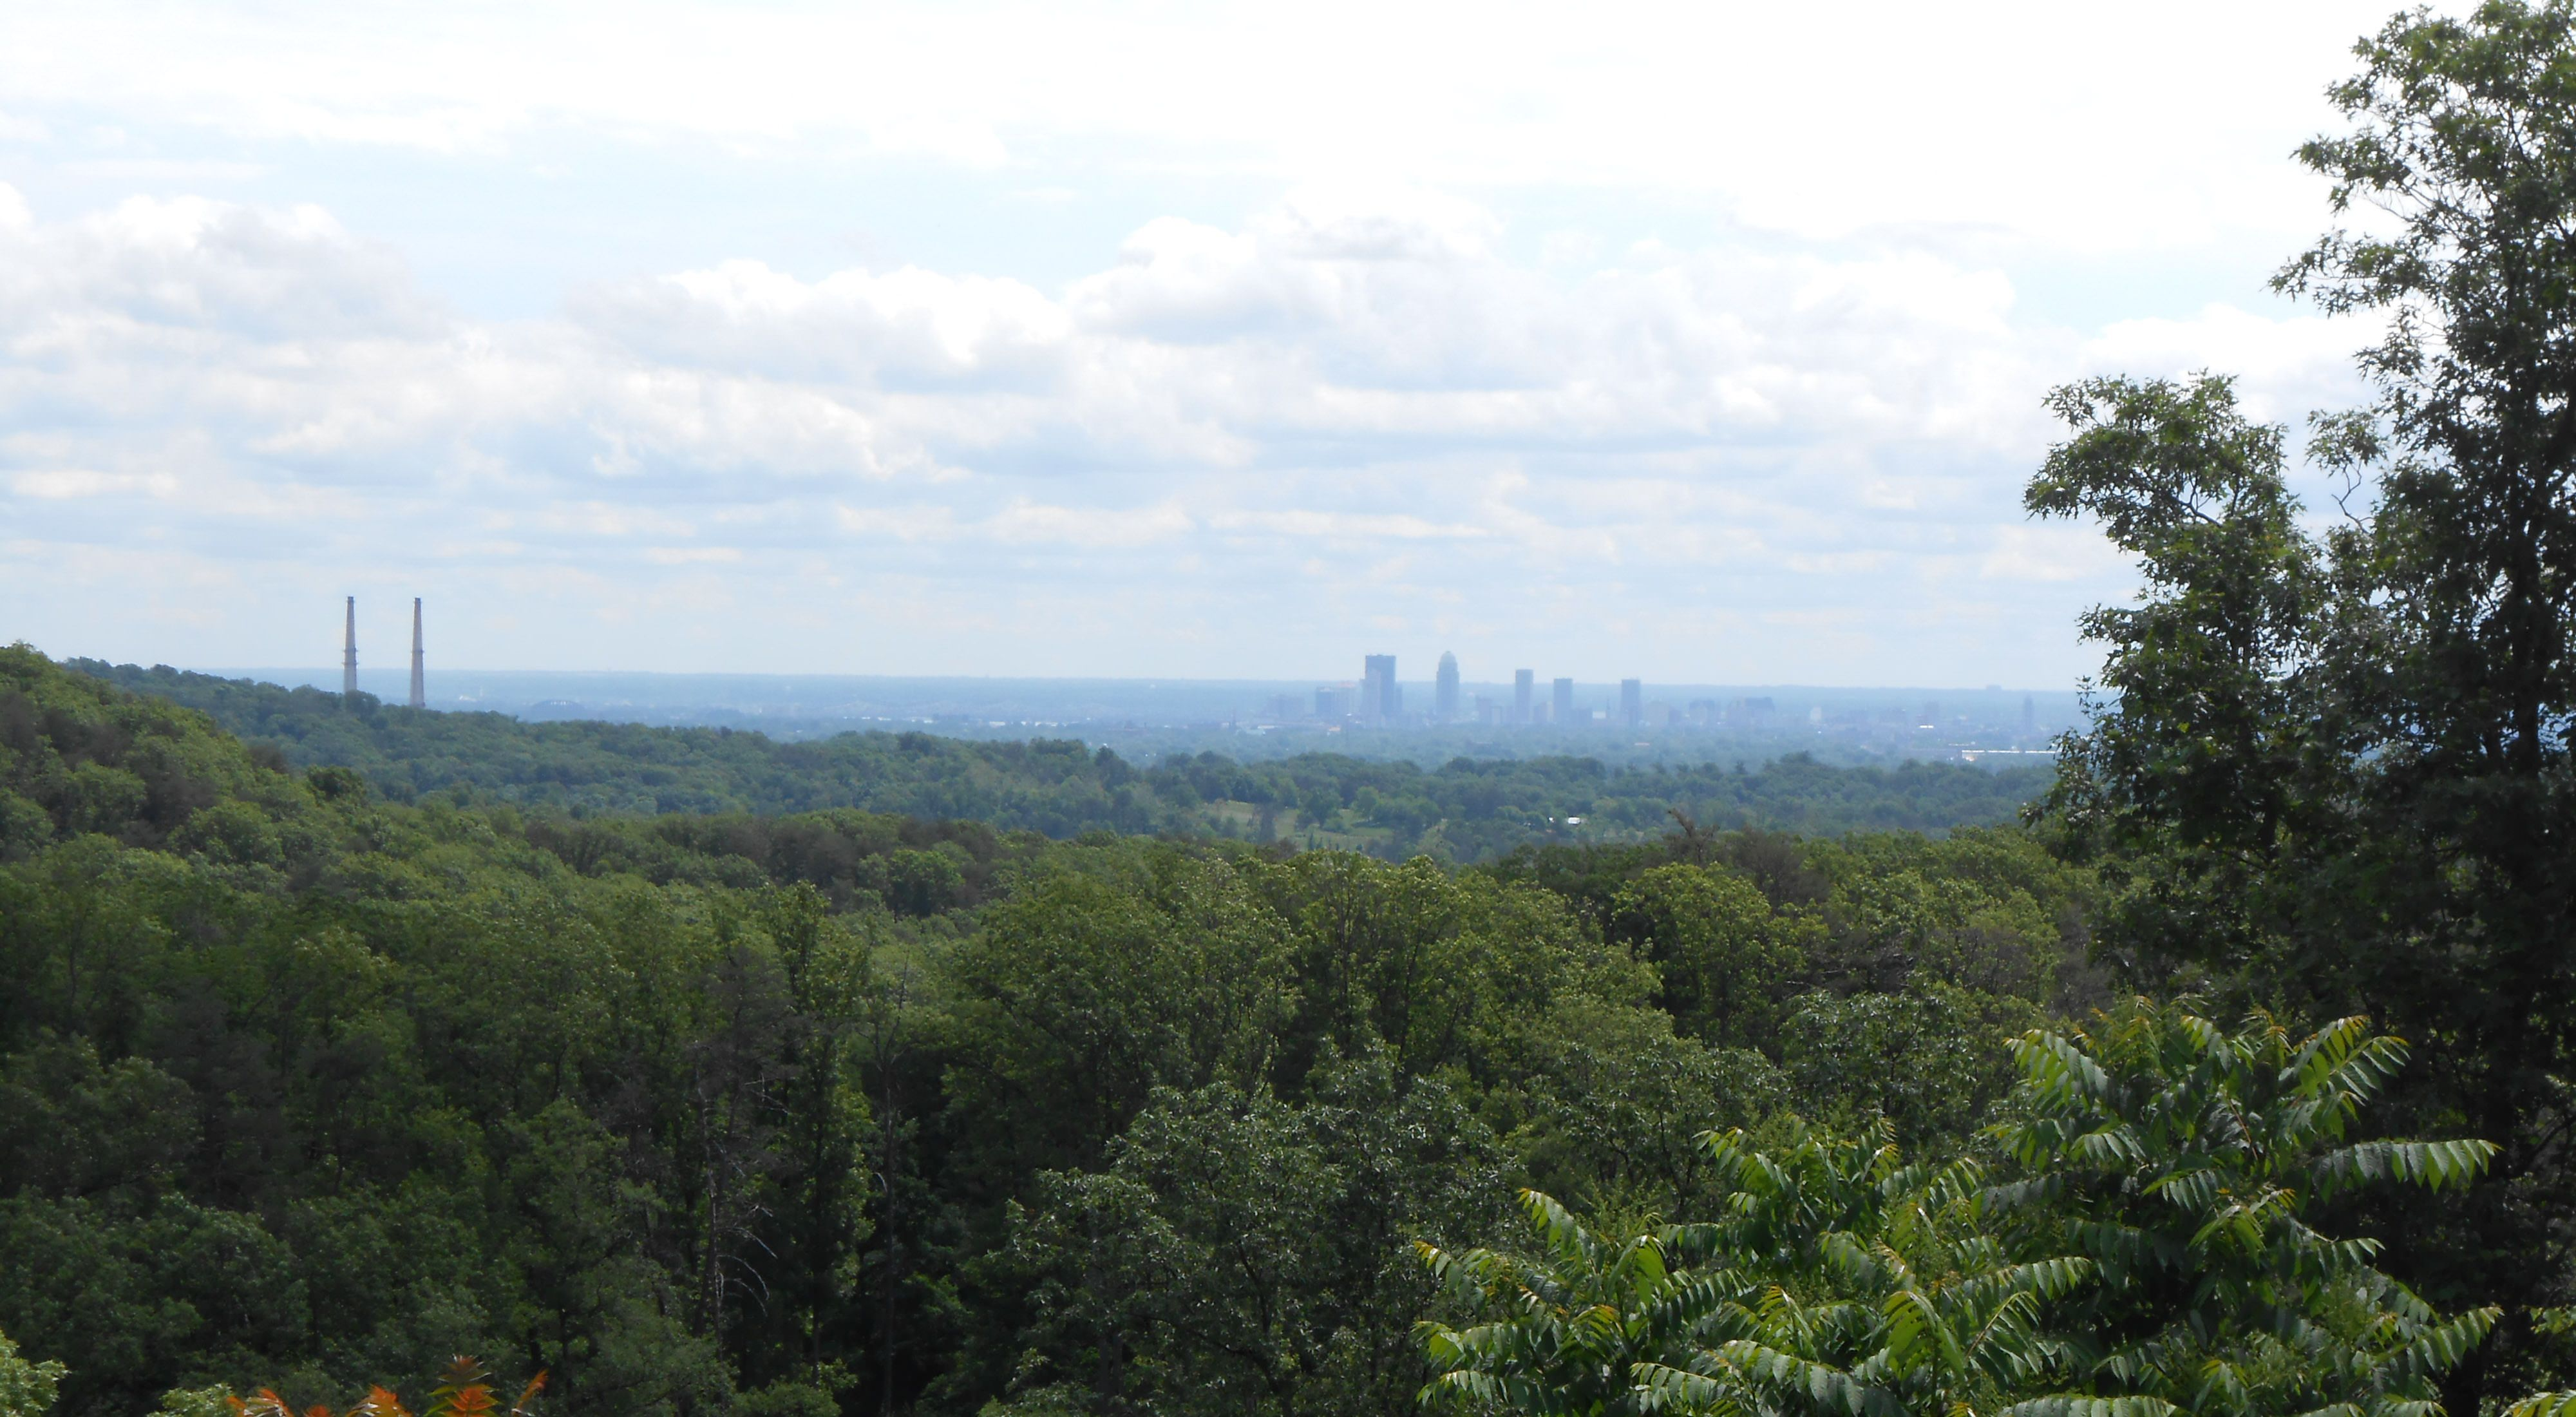 A view of downtown Louisville, Kentucky, from Hardin Ridge in Floyd County, Indiana.